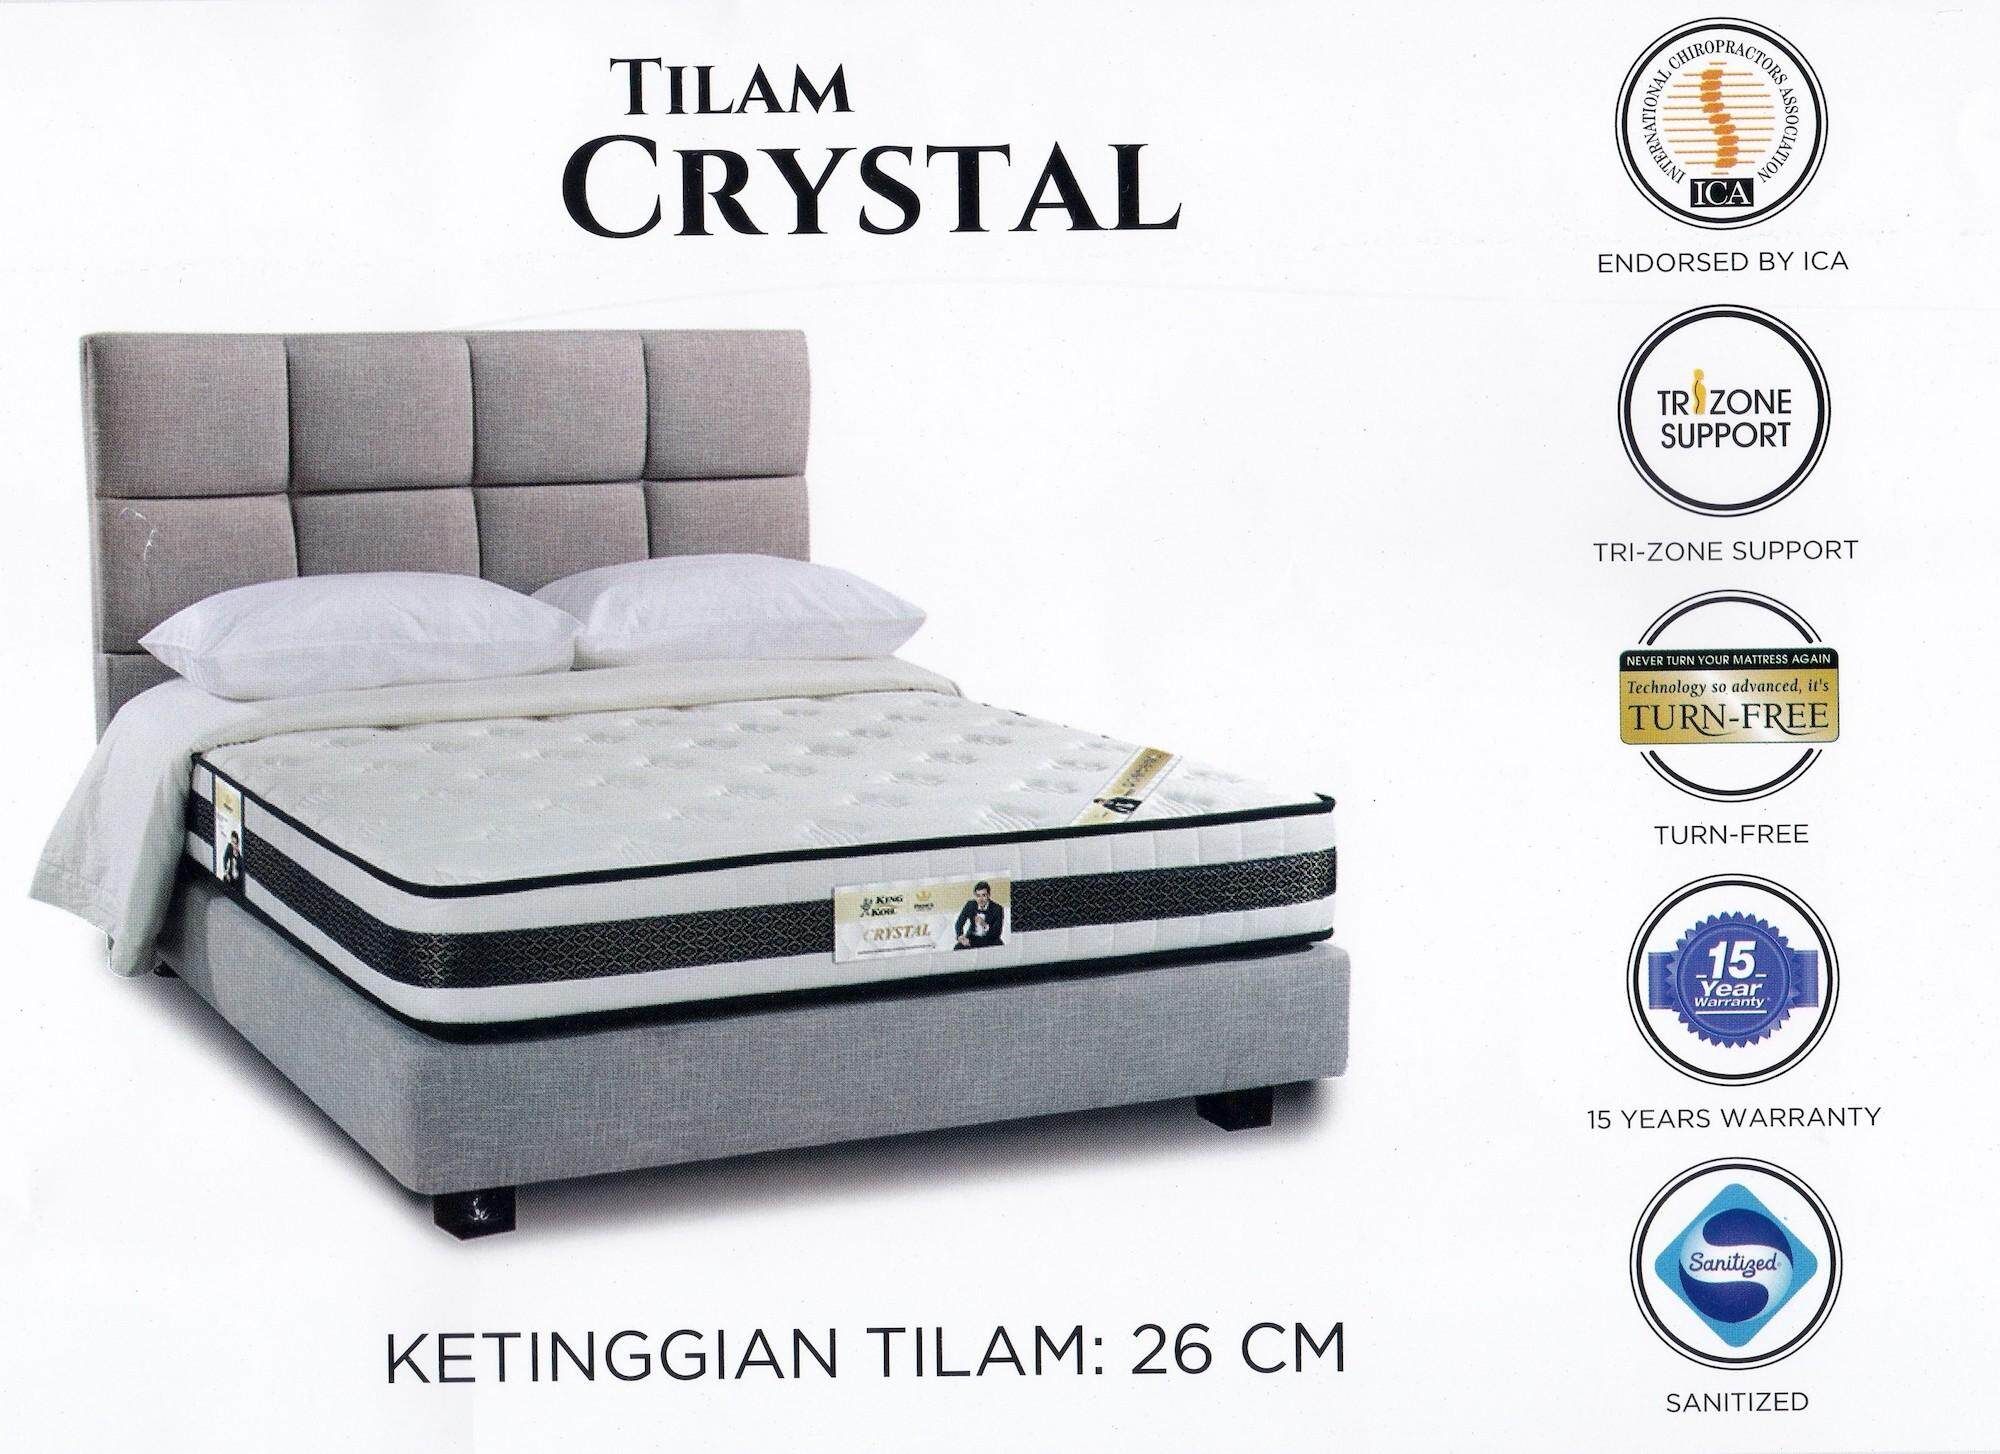 bcff39d4f2017 King Koil Prince Collection CRYSTAL 10 Inches Chiropractic Coil Spring +  Fiber Mattress   Tilam With